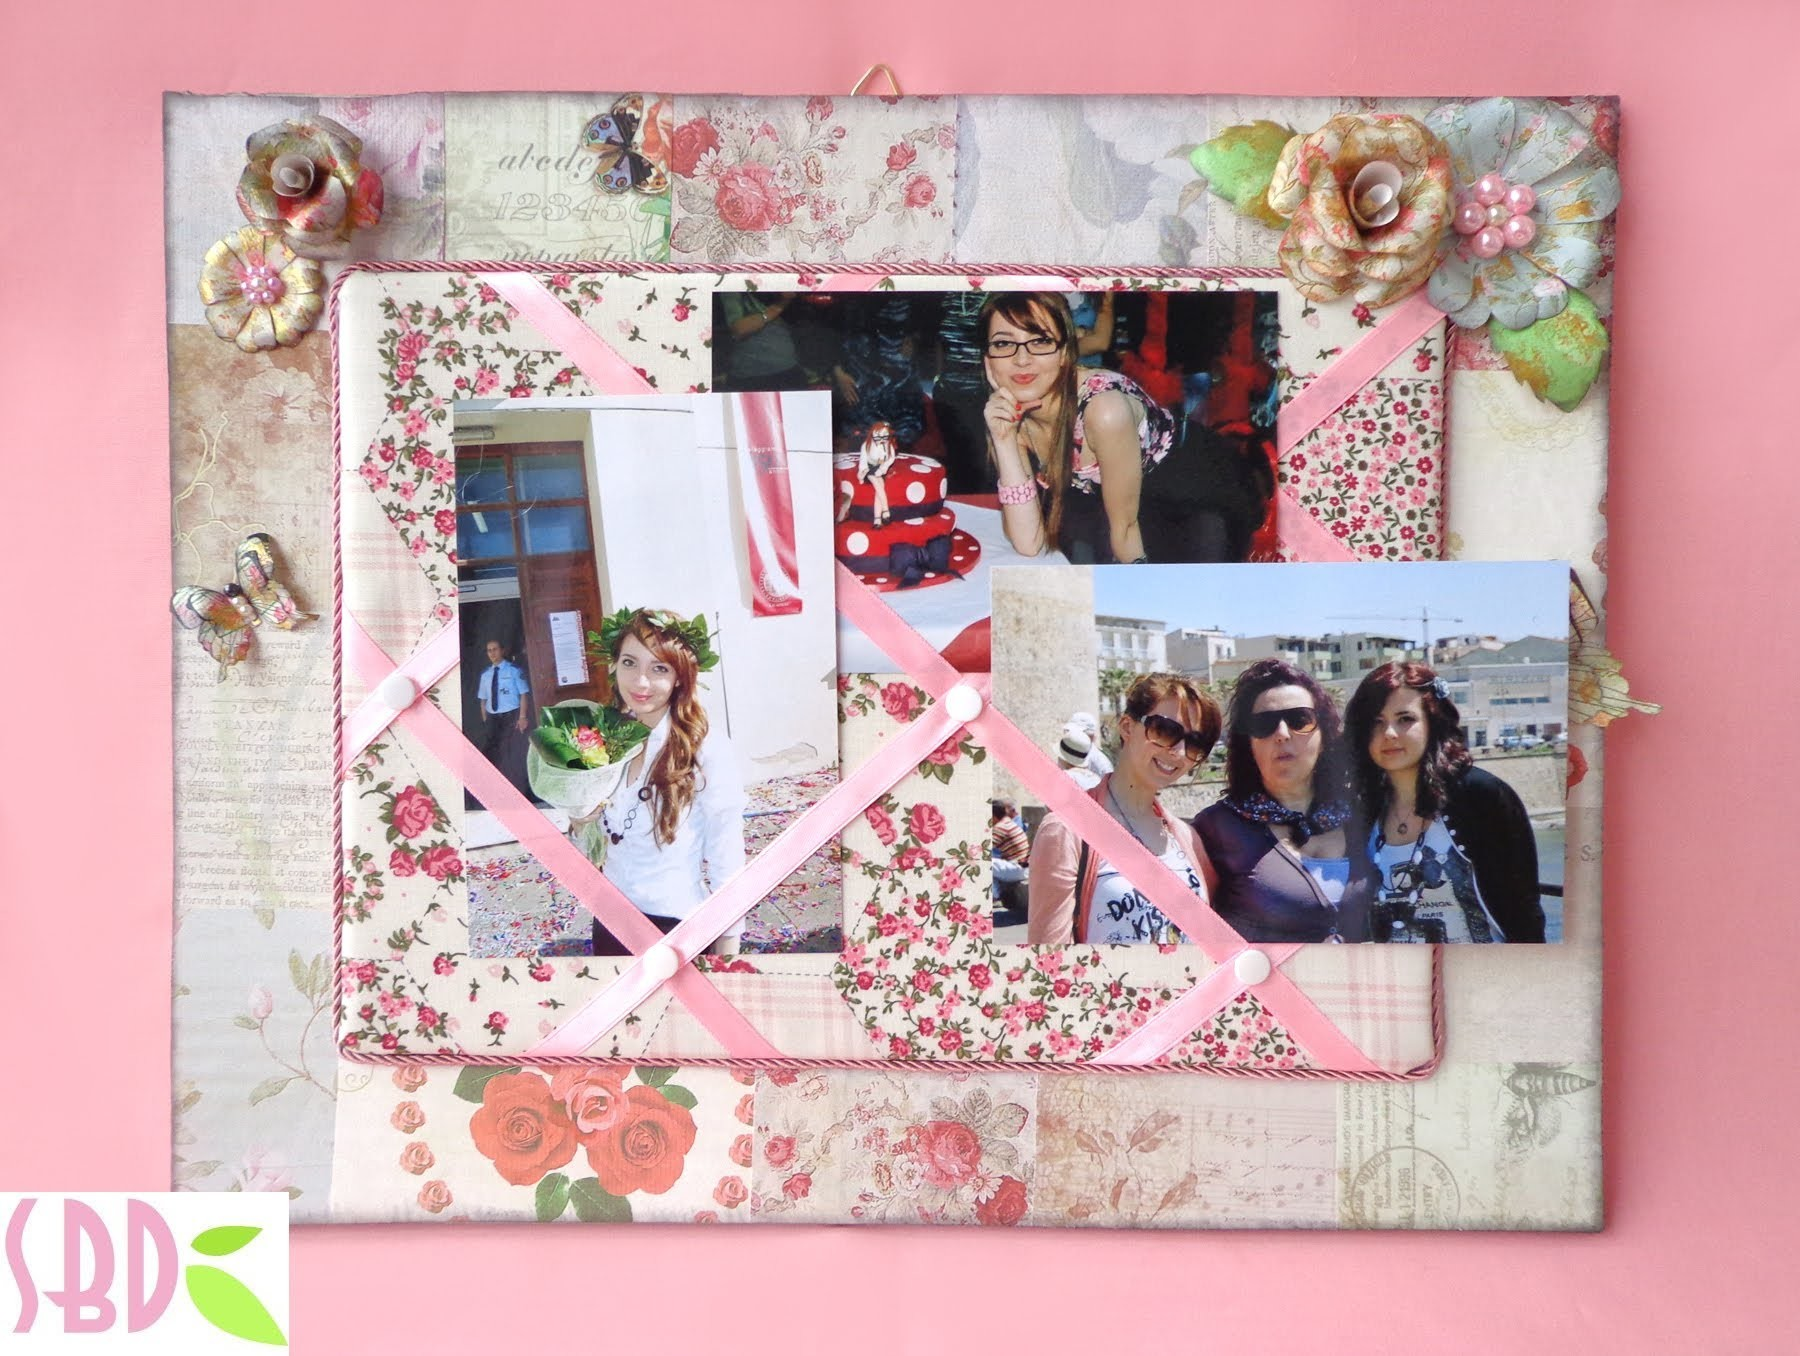 Bacheca Portafoto - Showcase photo holder Shabby chic (collab con HippyWitch)